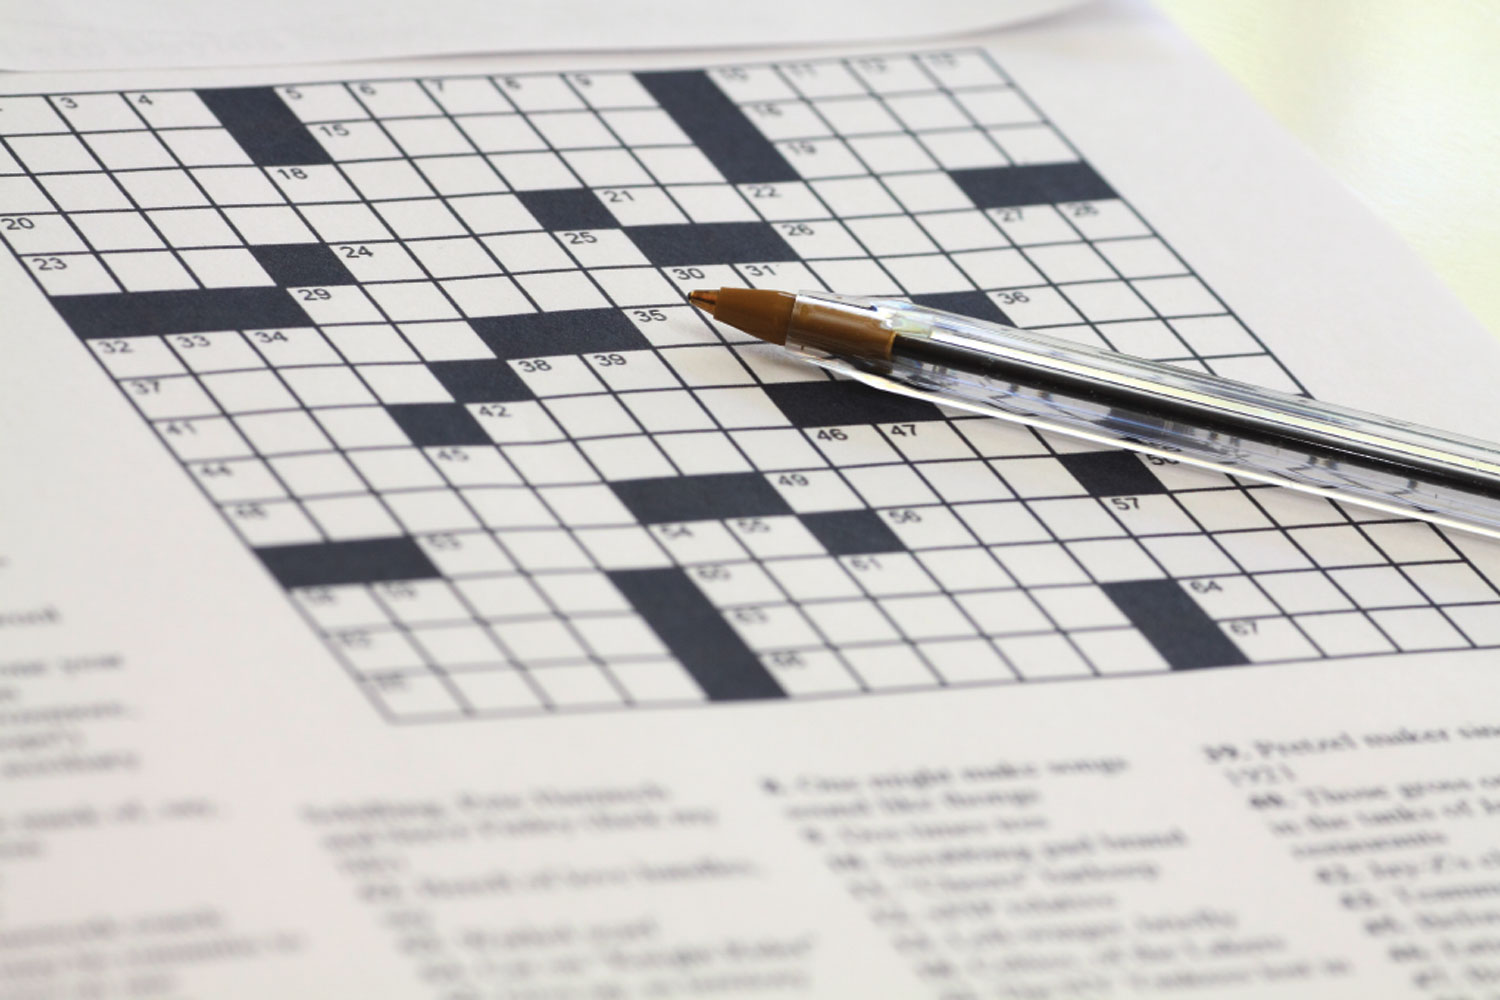 The benefits of crossword puzzles